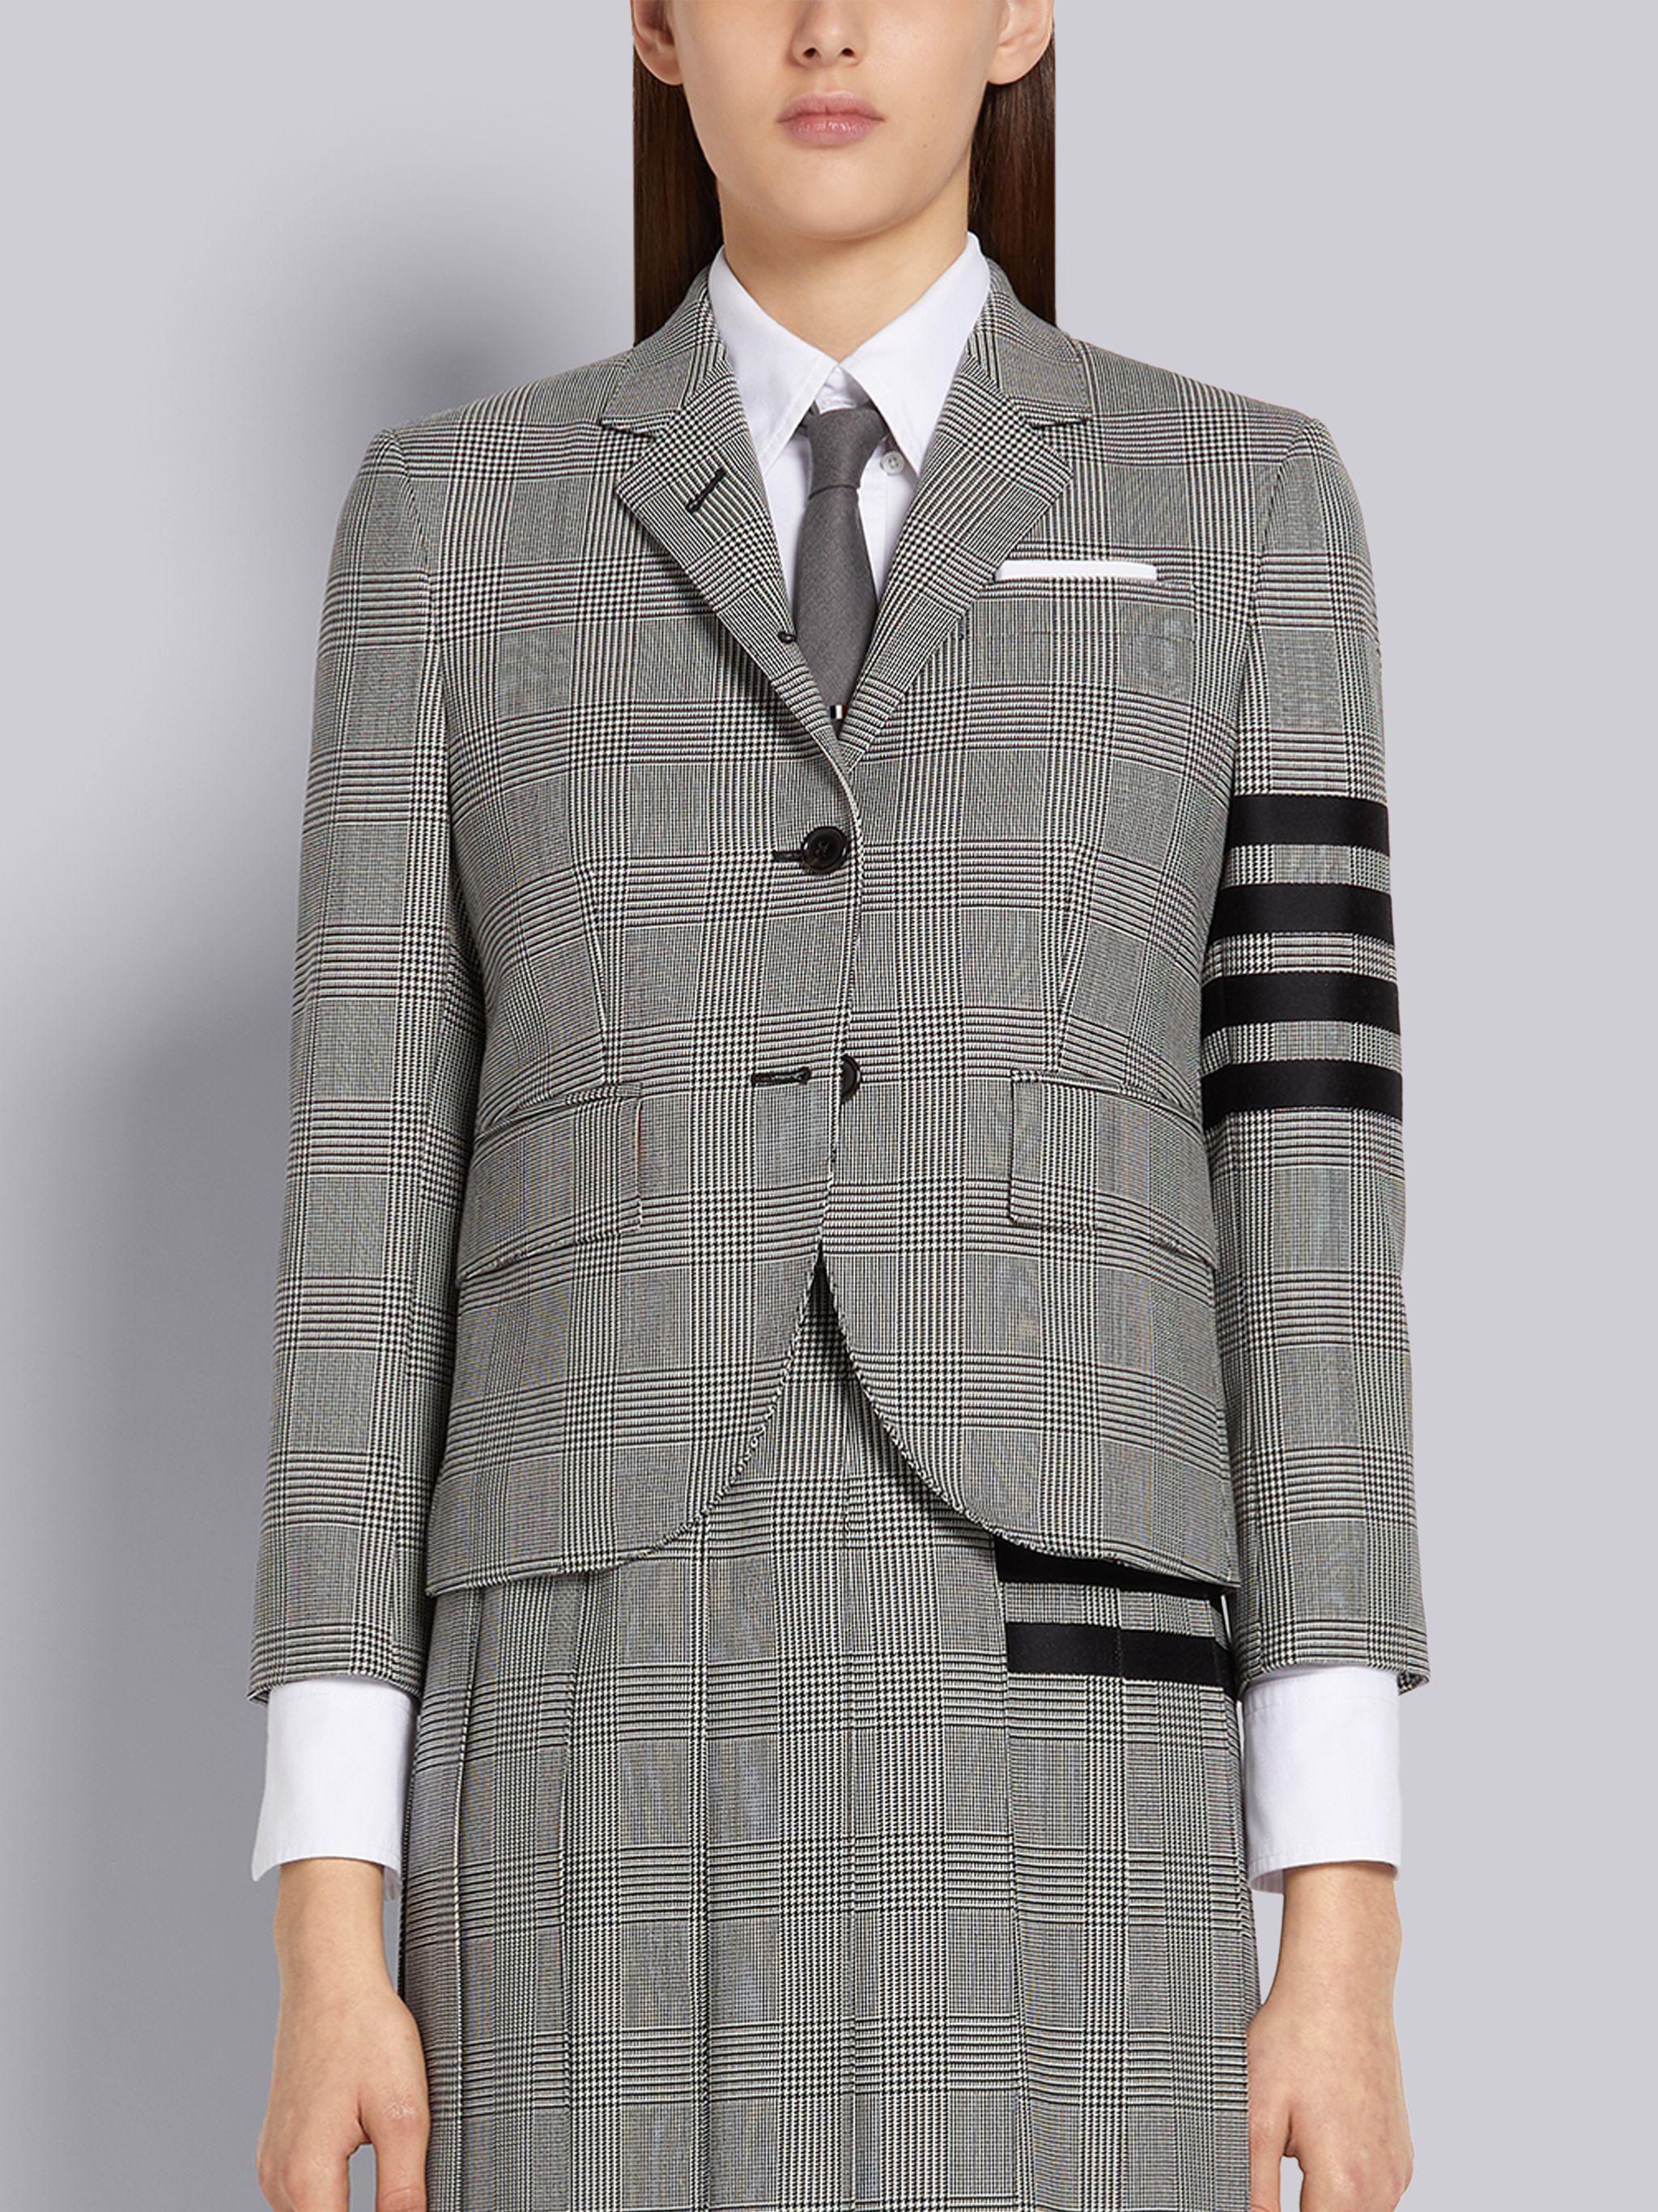 Black and White Wool Houndstooth Classic 4-Bar Jacket